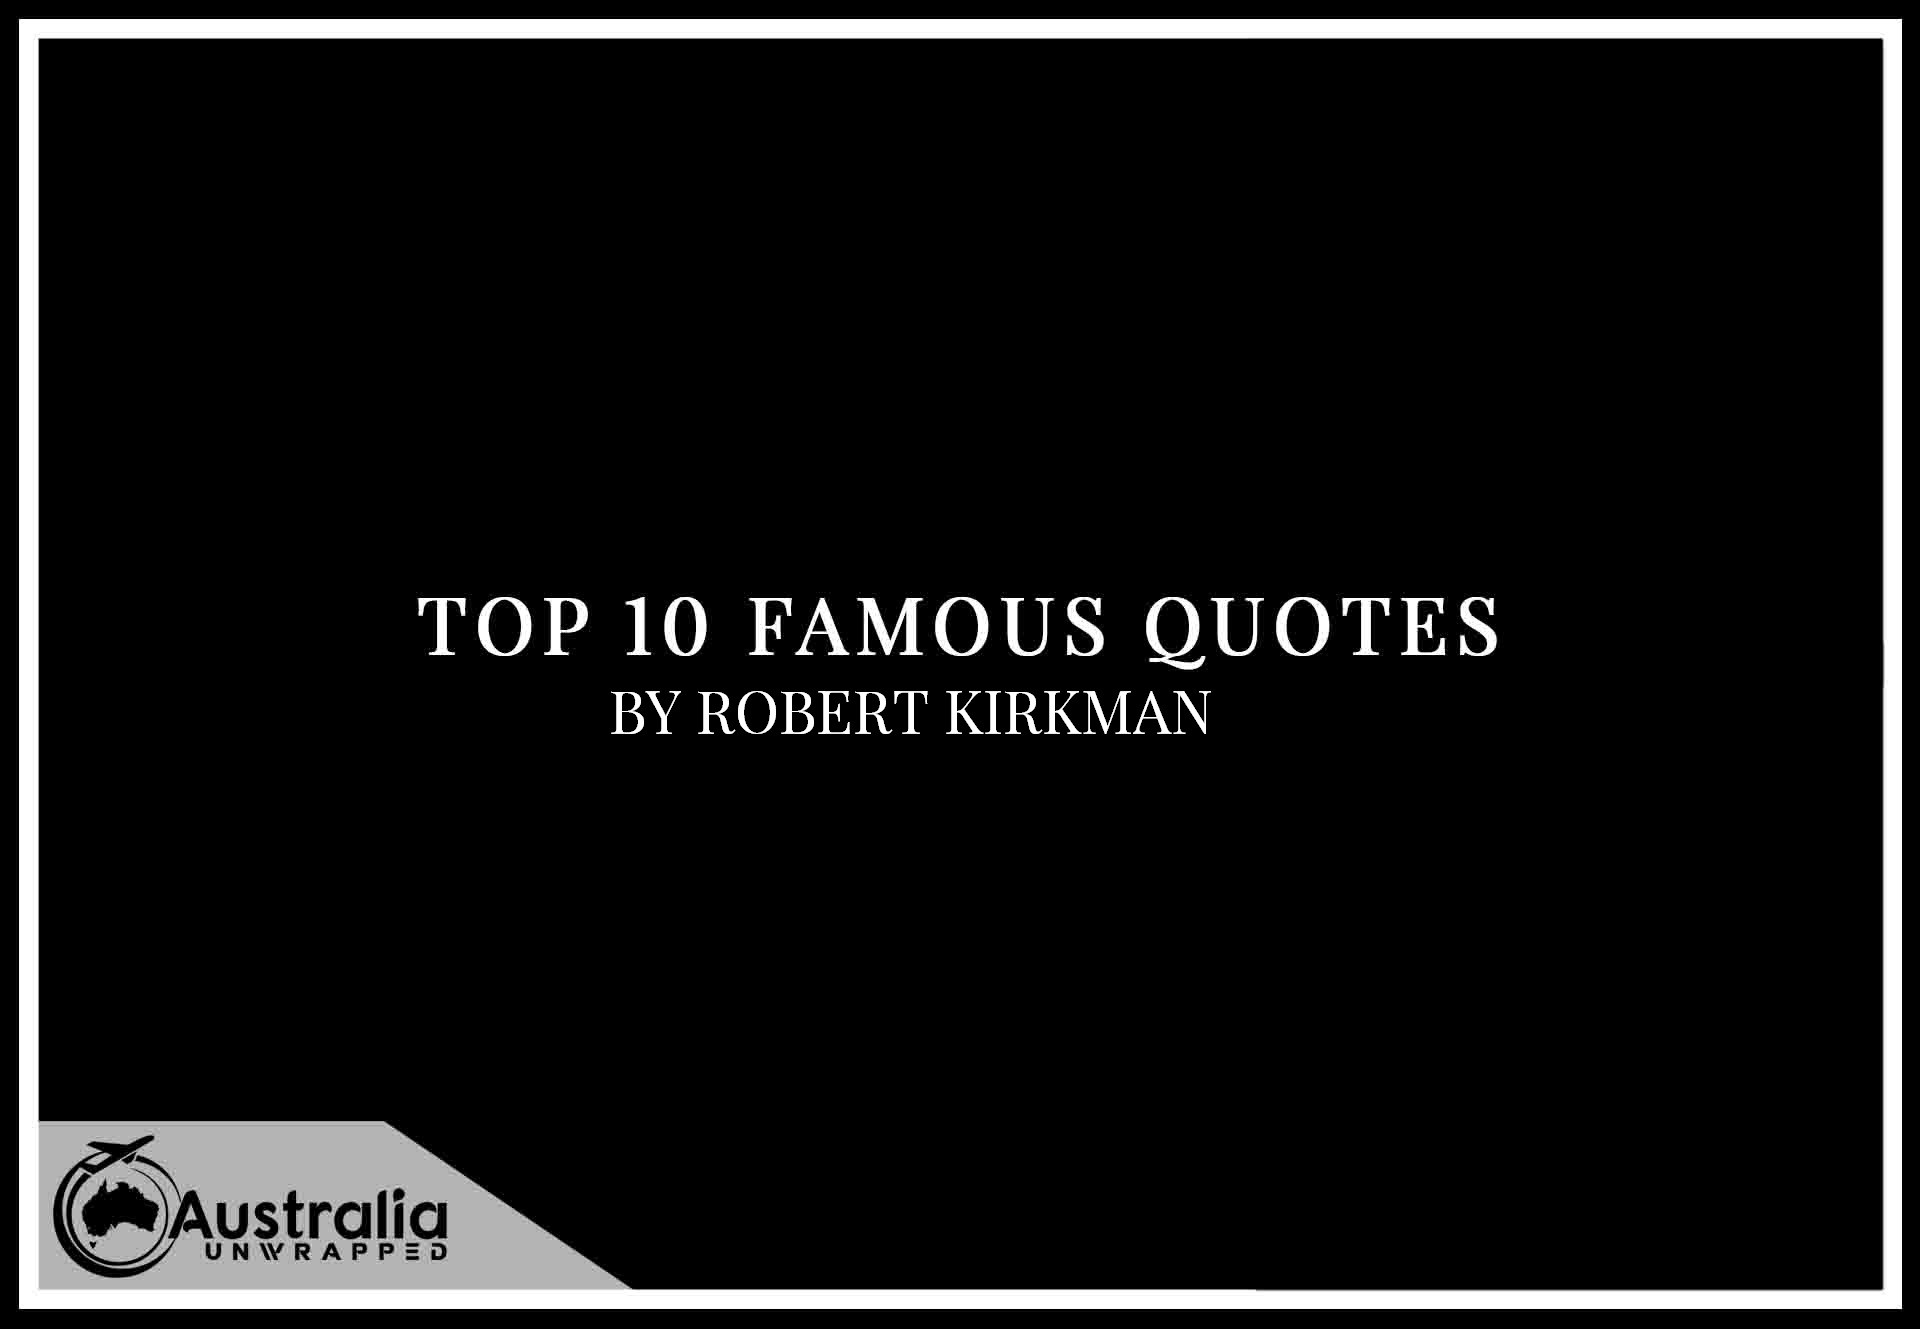 Top 10 Famous Quotes by Author Robert Kirkman